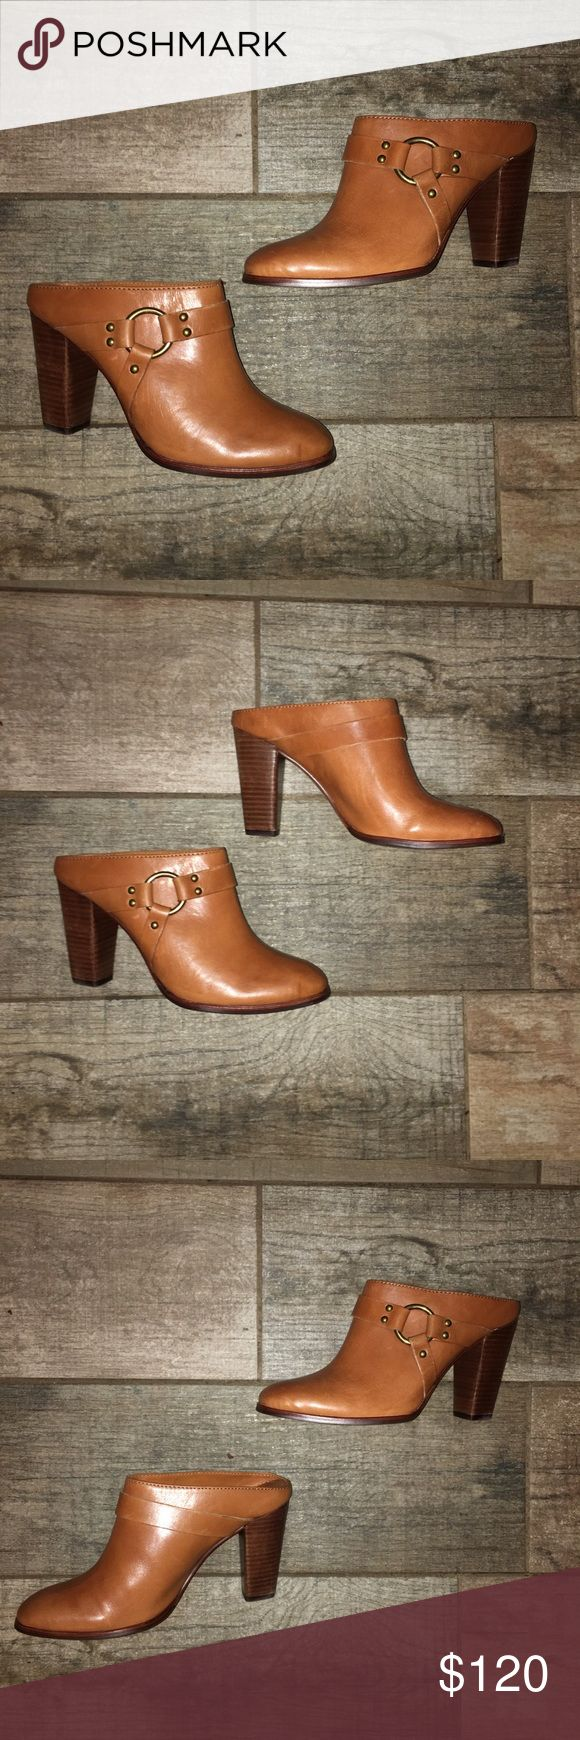 "Frye Women's Laurie harness mules Gorgeous leather harness tan leather mules. BRAND NEW WITHOUT BOX. never worn. Size 8 heel is about 3"" high. Comfortable to walk in Frye Shoes Mules & Clogs"